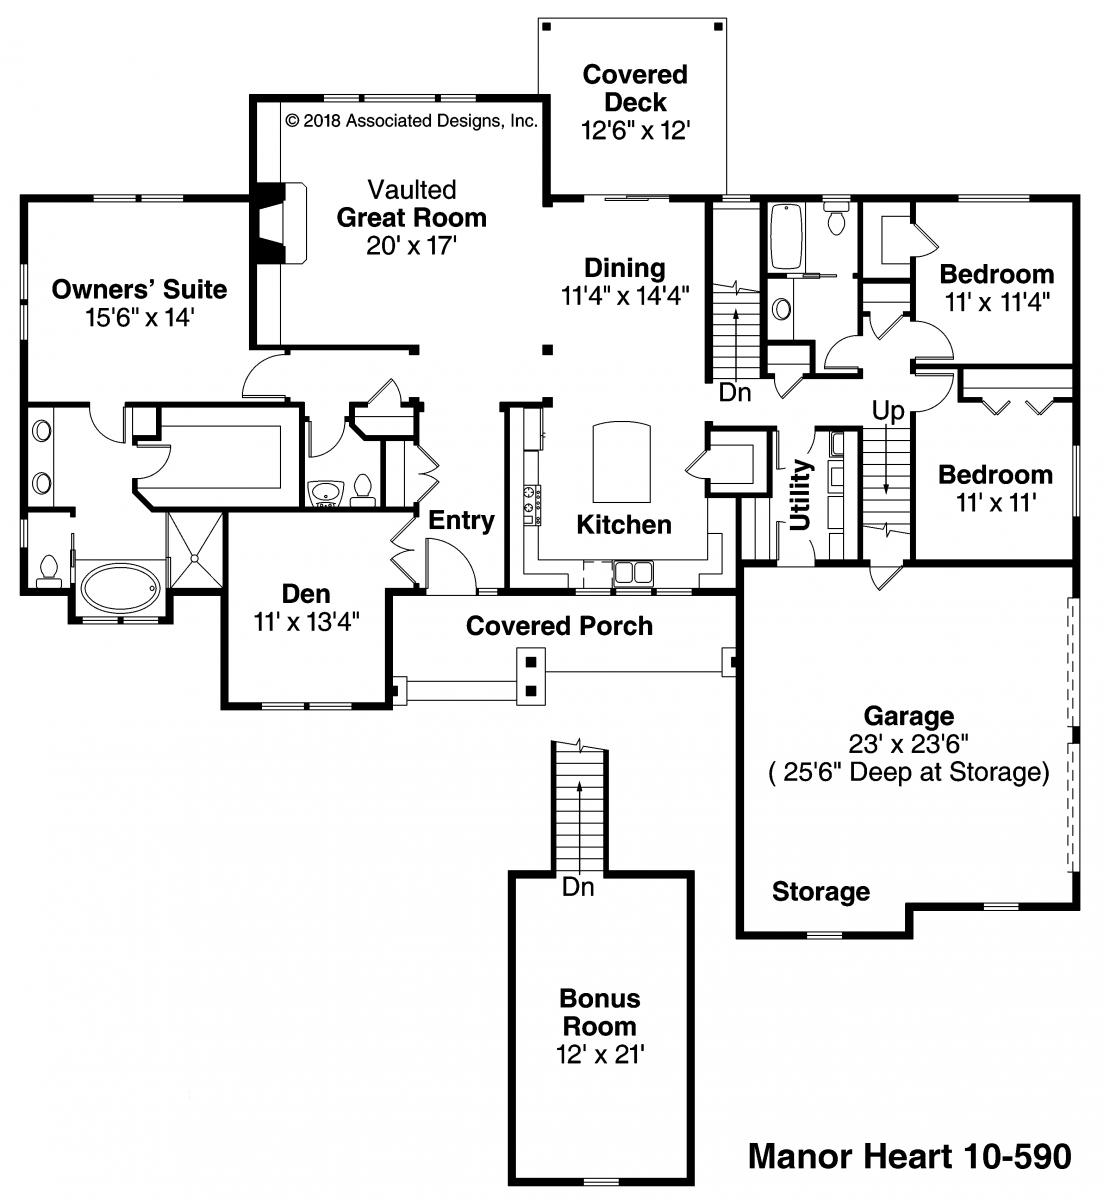 How To Study Floor Plans Like A Pro 4 Tips Tricks To Reviewing Home Designs Associated Designs